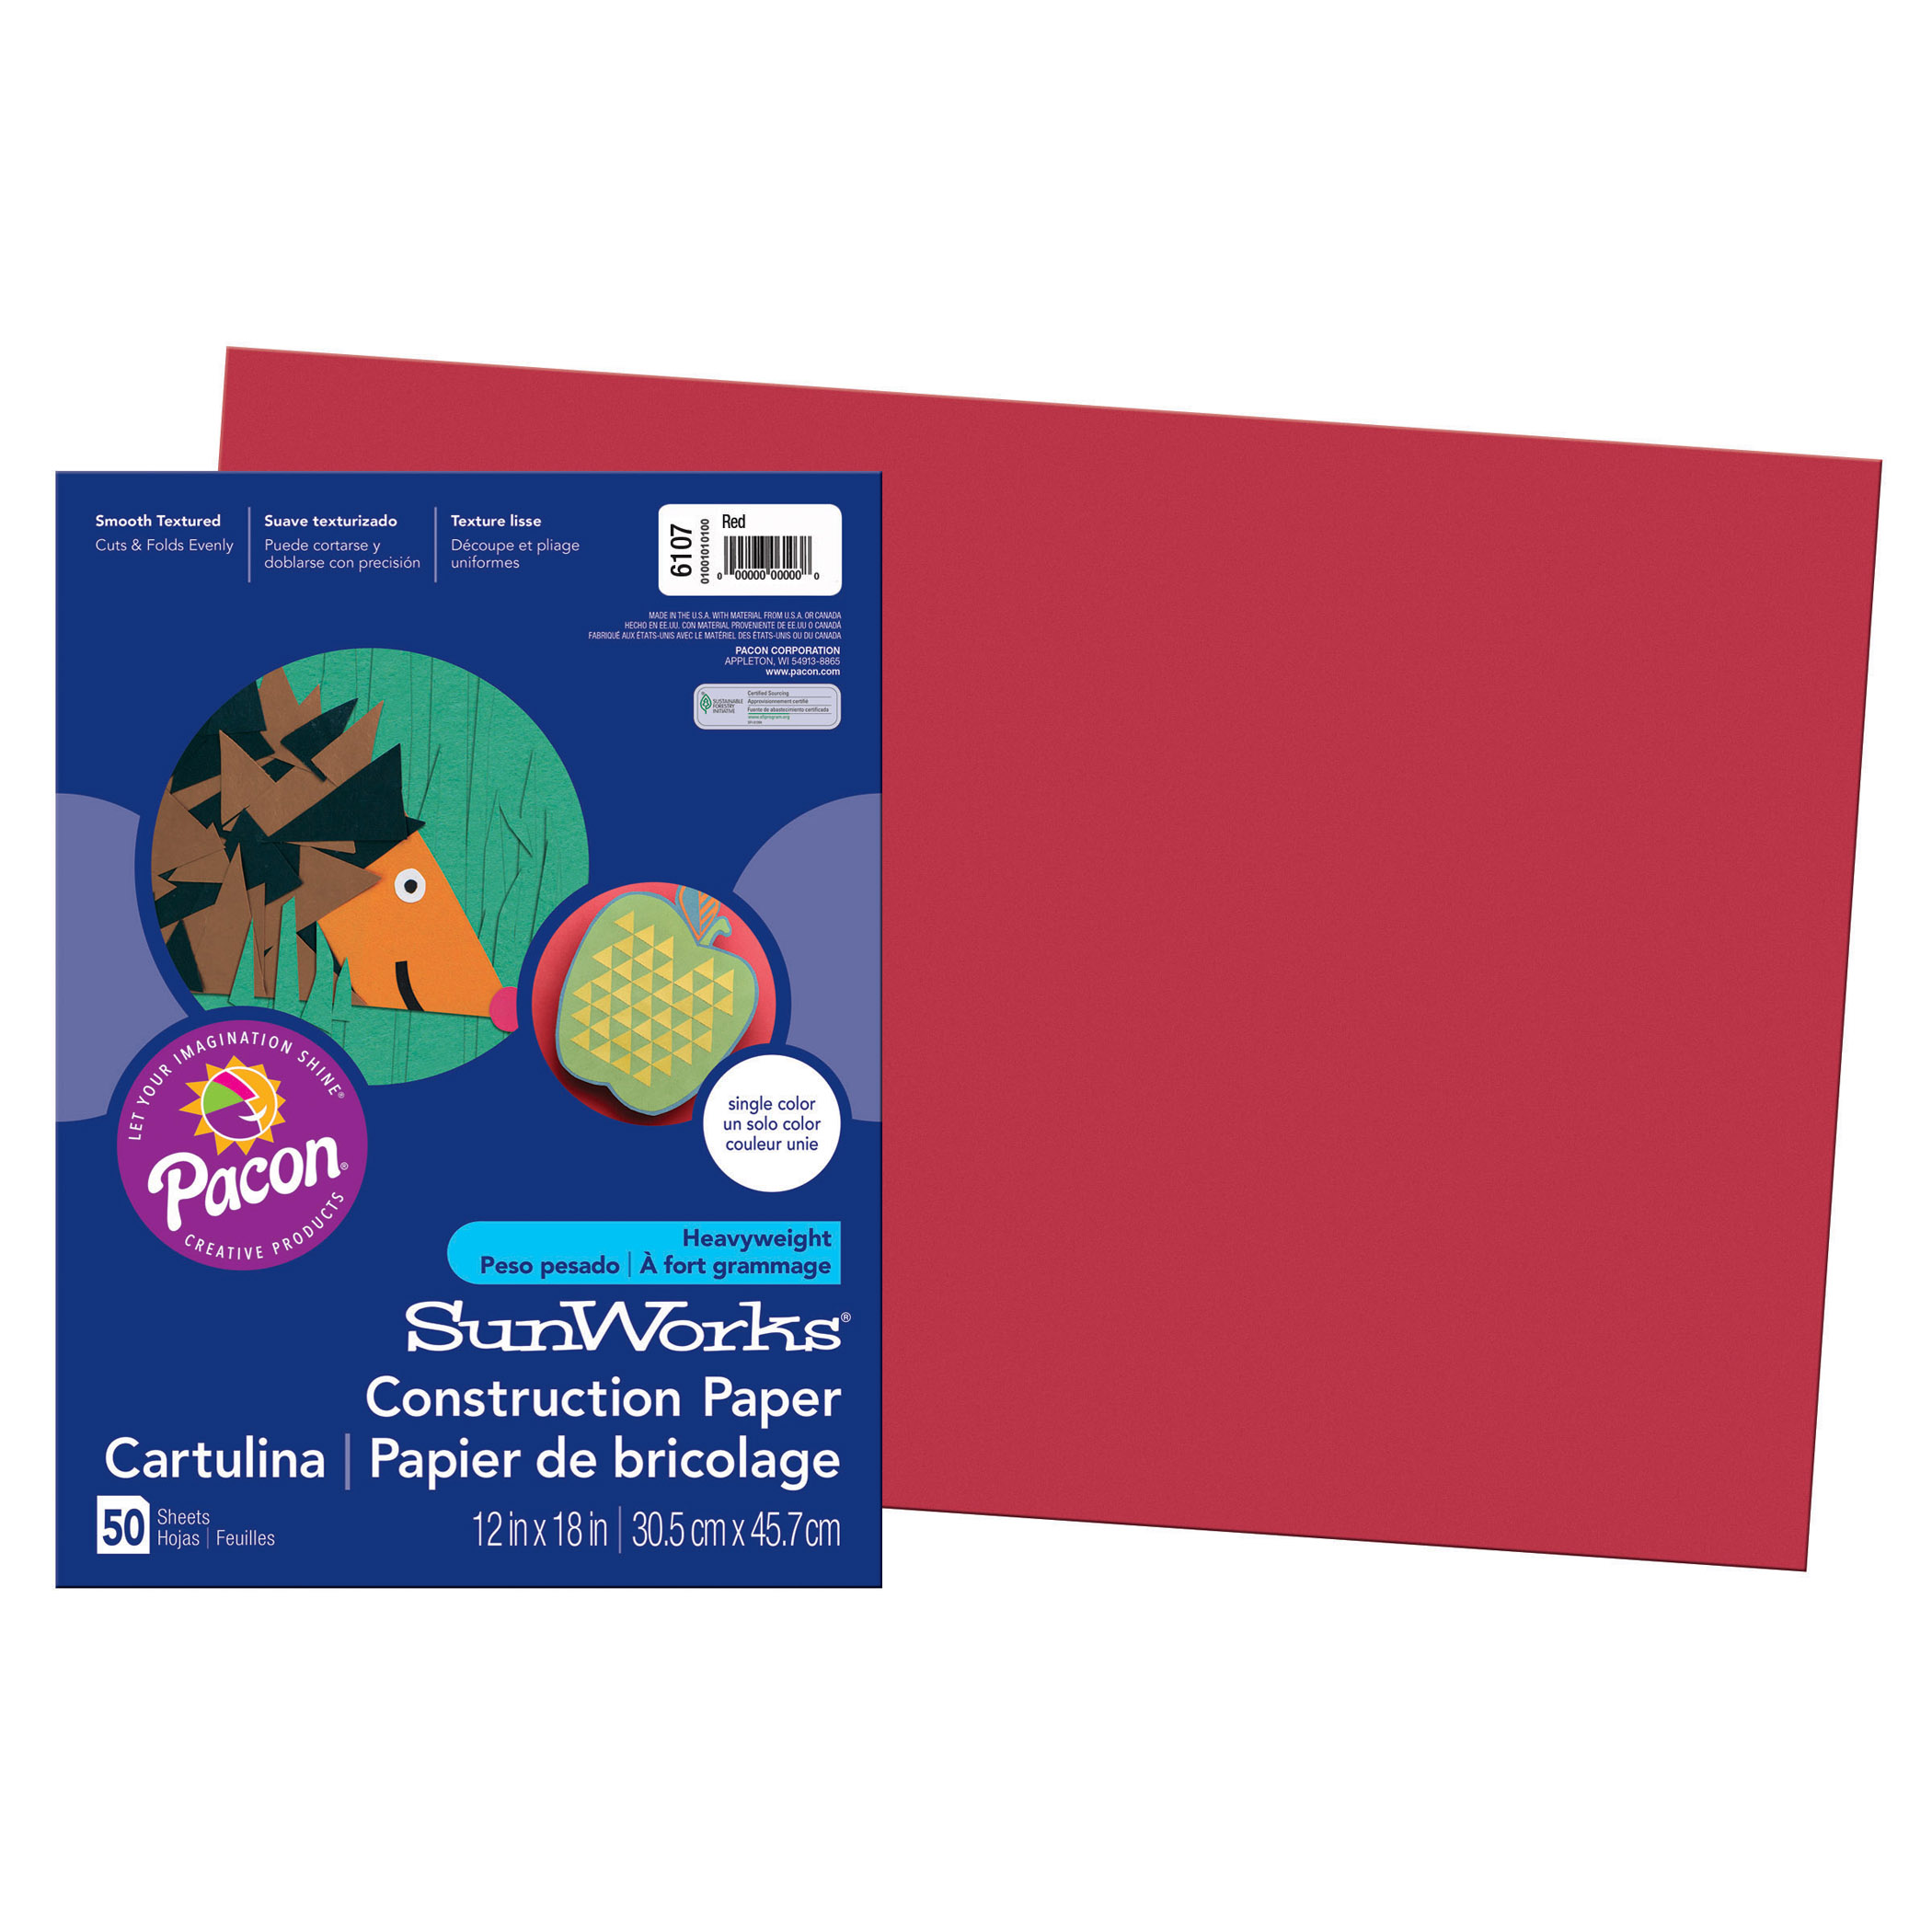 "Pacon® SunWorks® Construction Paper, 12"" x 18"", Red - 50 Sheets per pack, 5 packs"